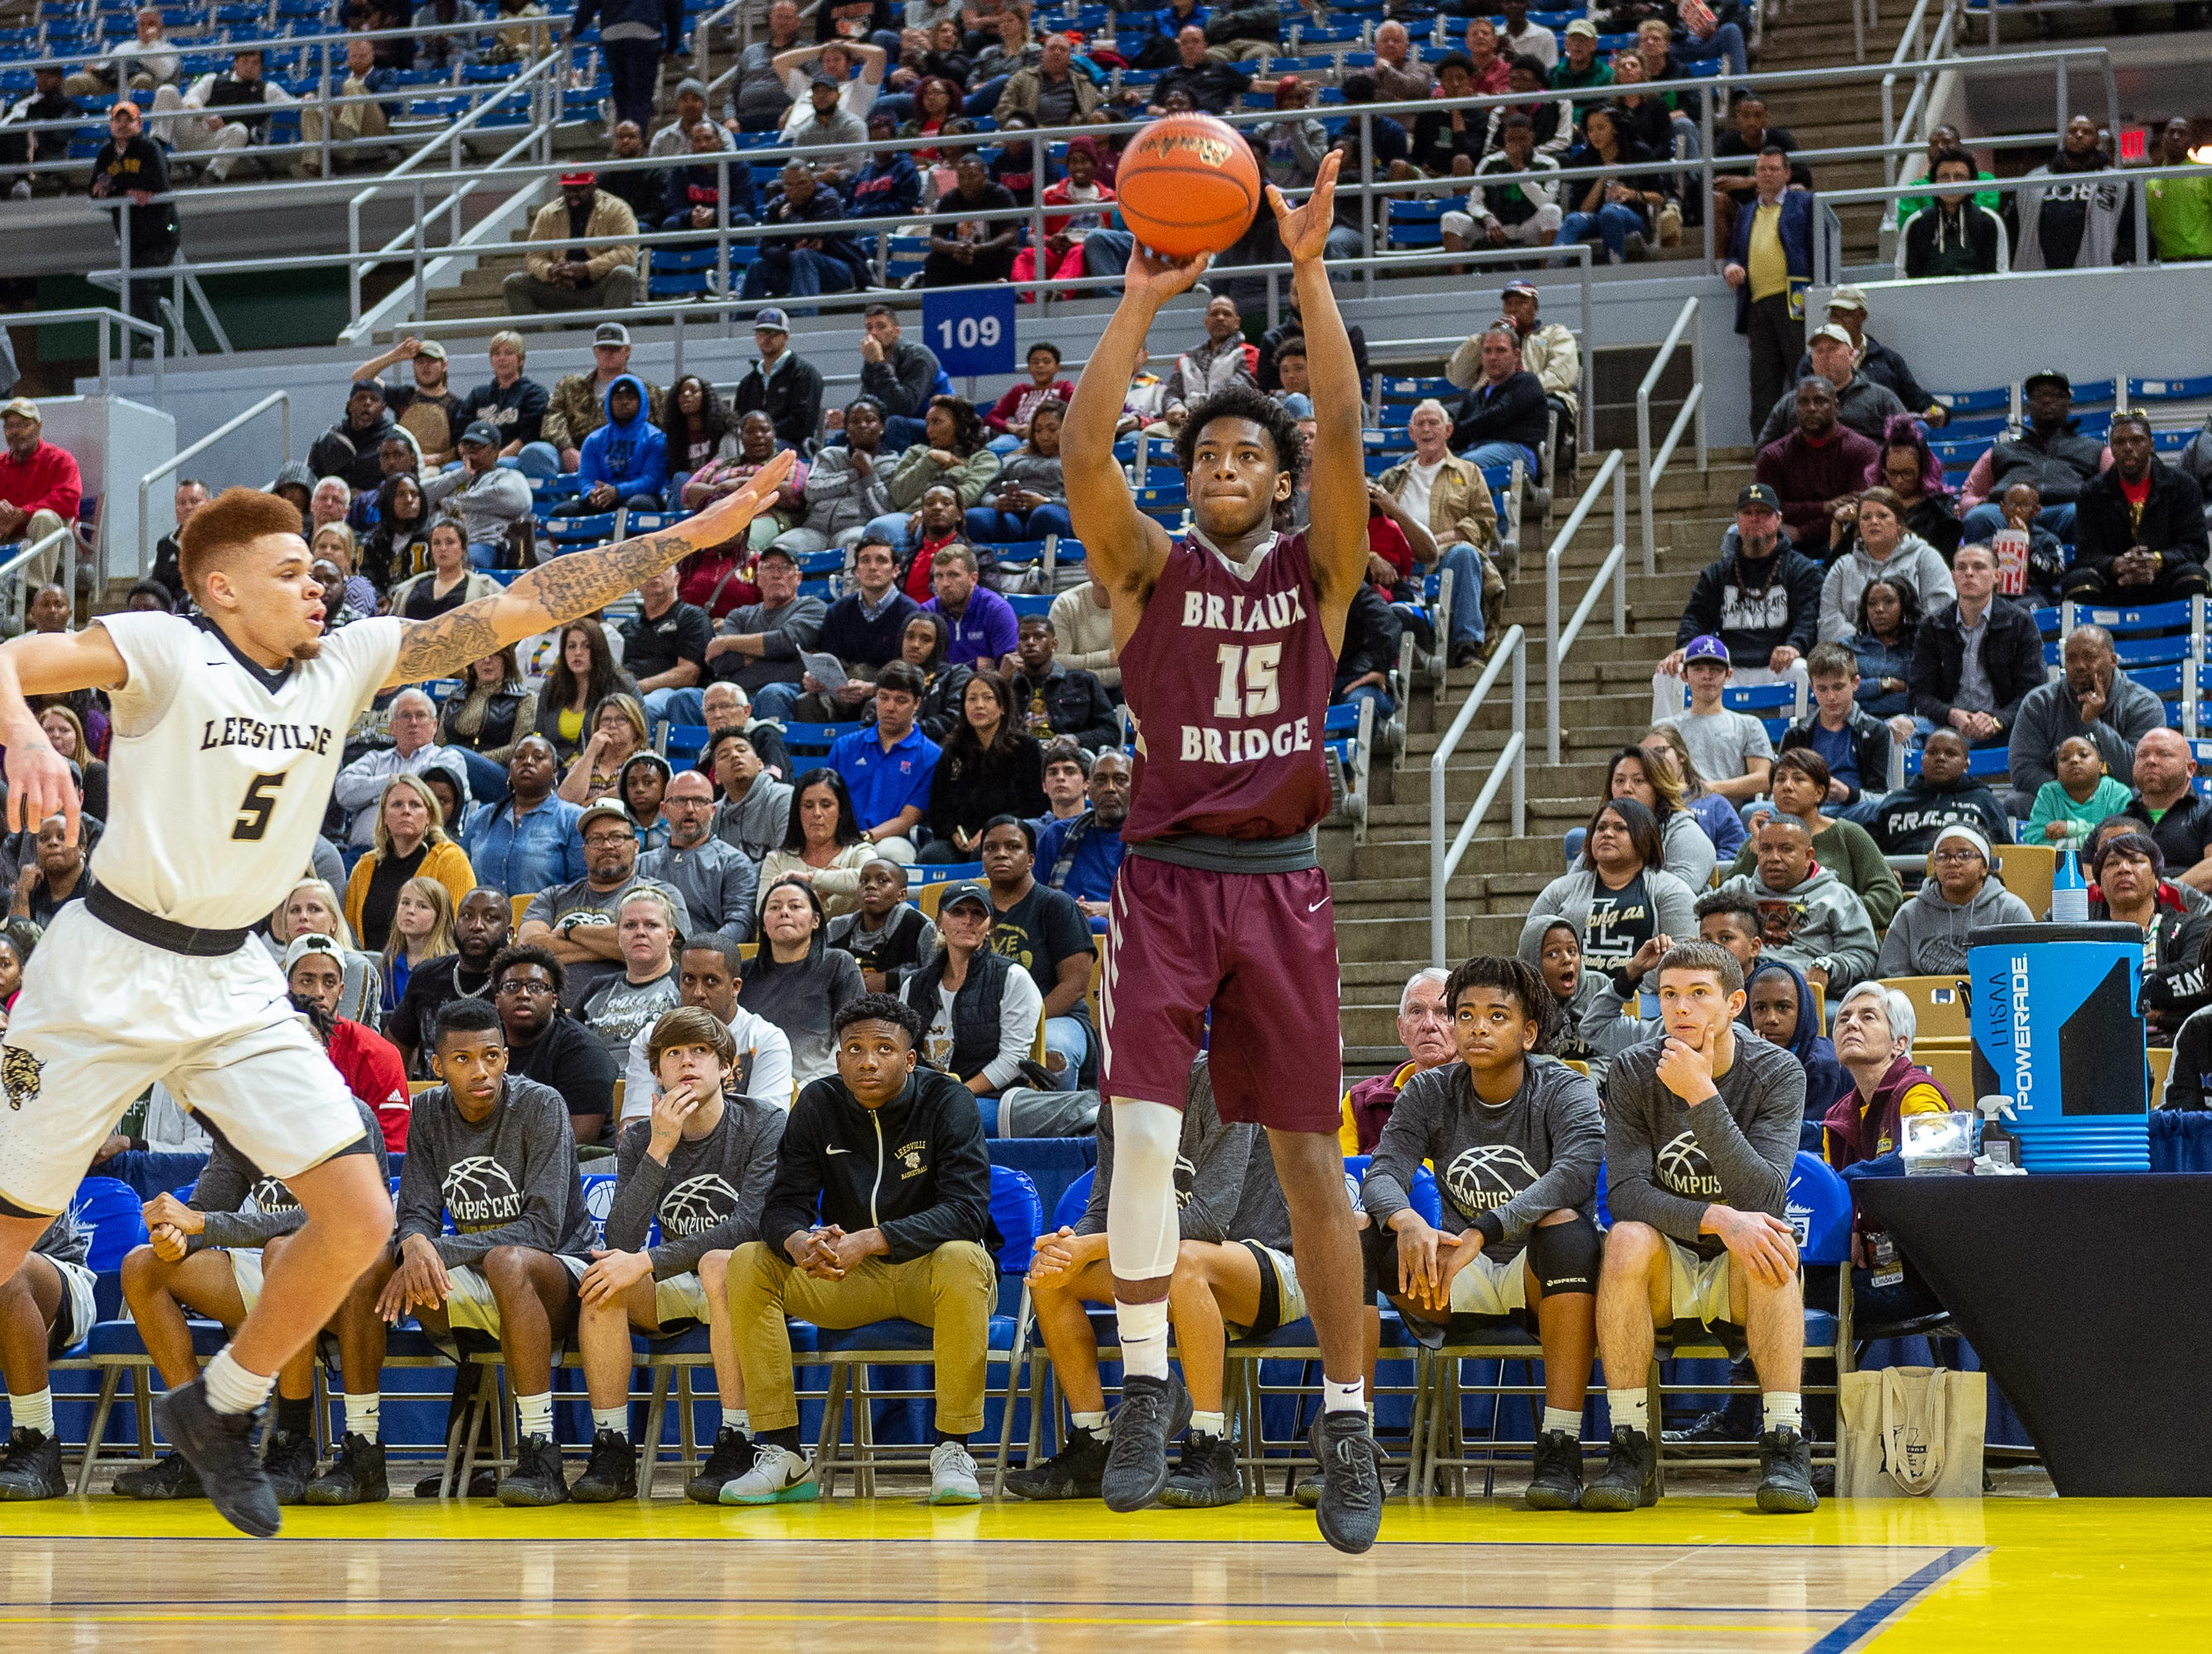 Kyser Patt shoots a three as Breaux Bridge takes on Leesville in the semi final round of the LHSAA Basketball Championship Tournament. Tuesday, March 5, 2019.